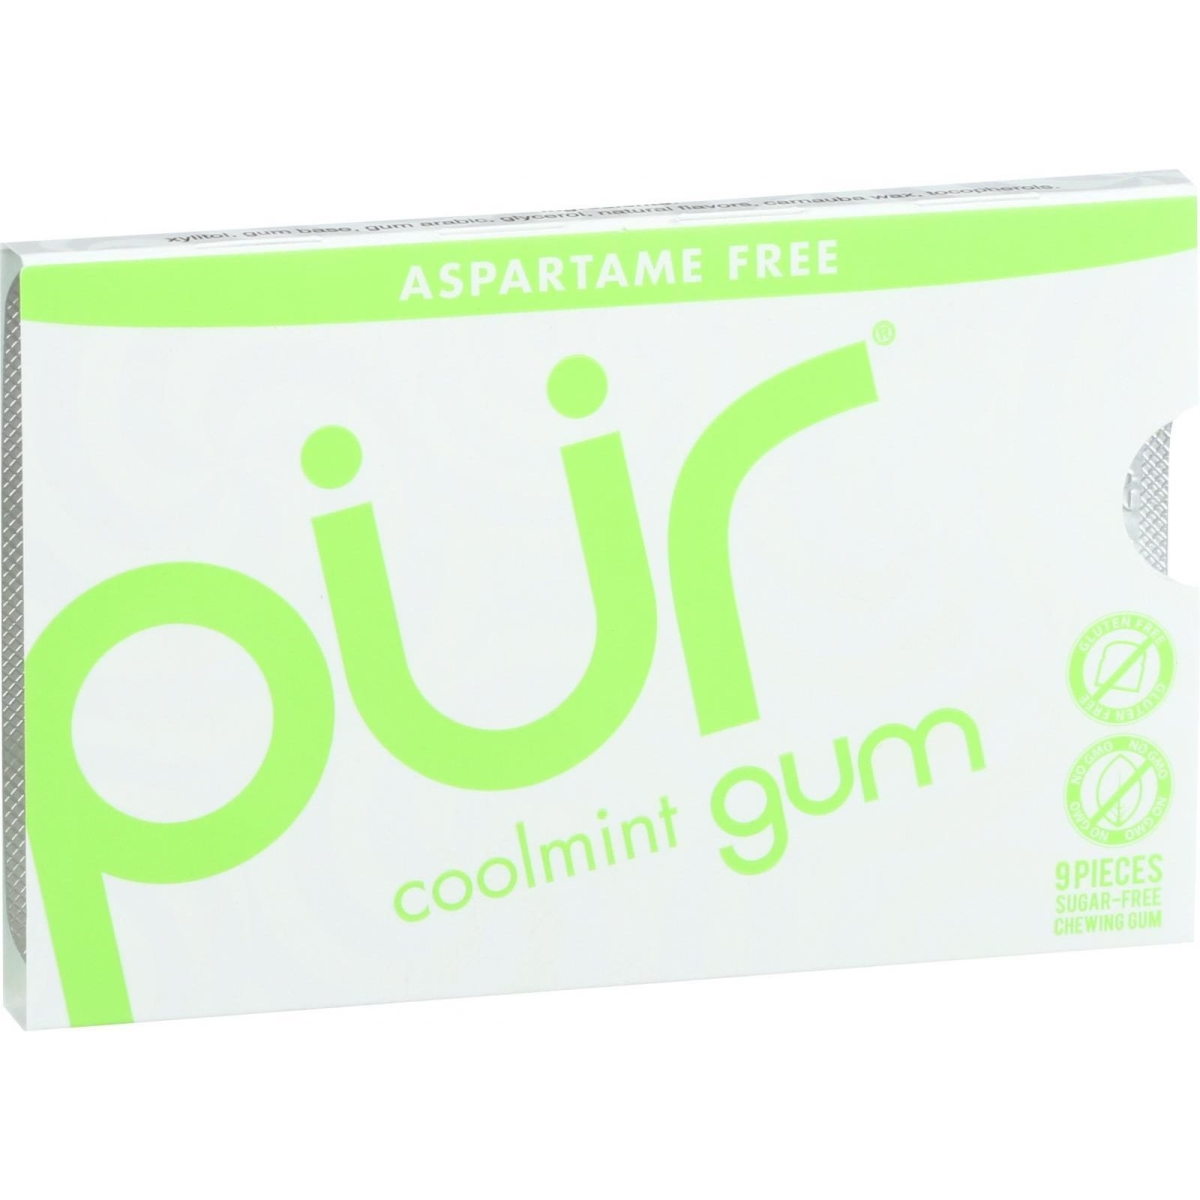 Pur Gum 1608470 12.6 g Coolmint Chewing Gum - Aspartame Free - 9 Pieces Case of 12